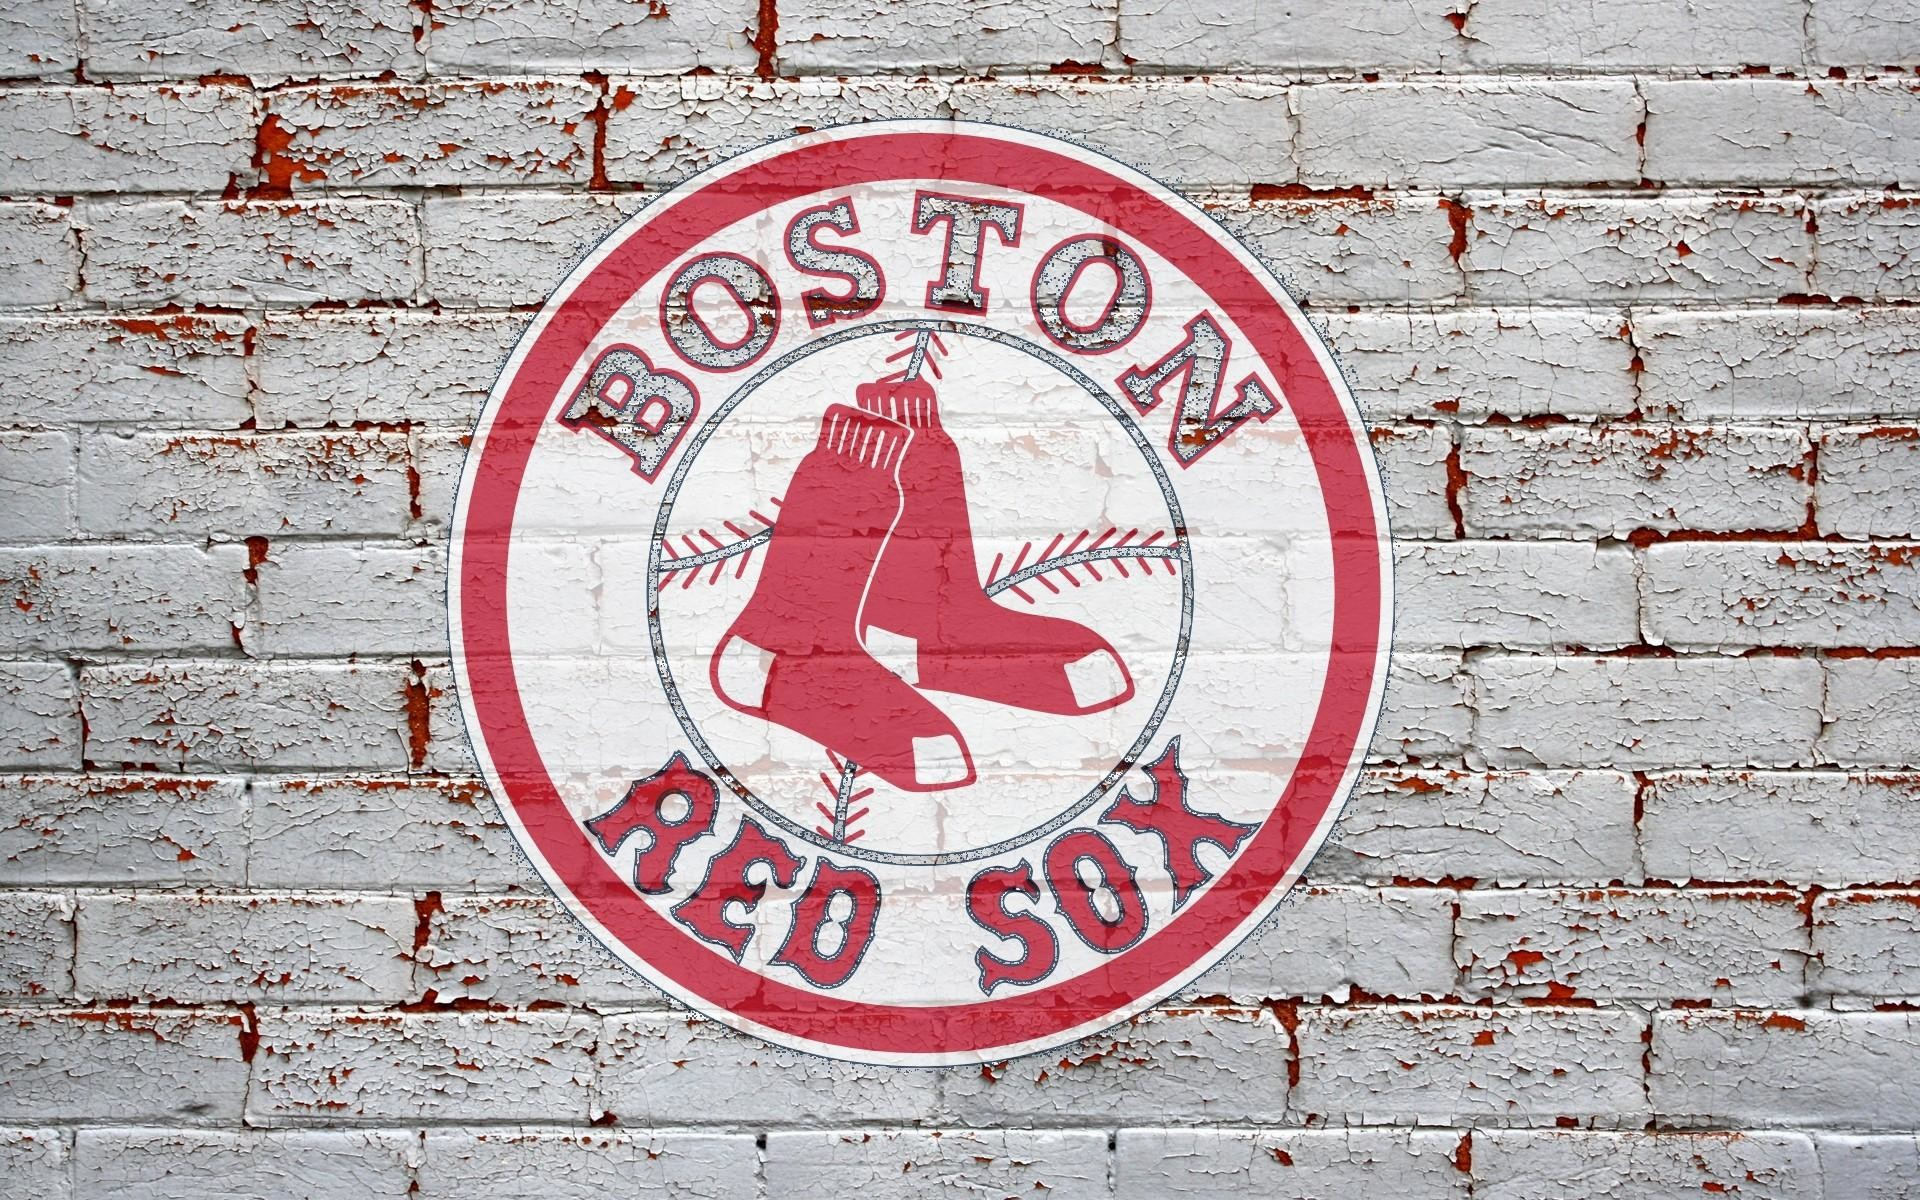 1920x1200 - Boston Red Sox Wallpaper Screensavers 5